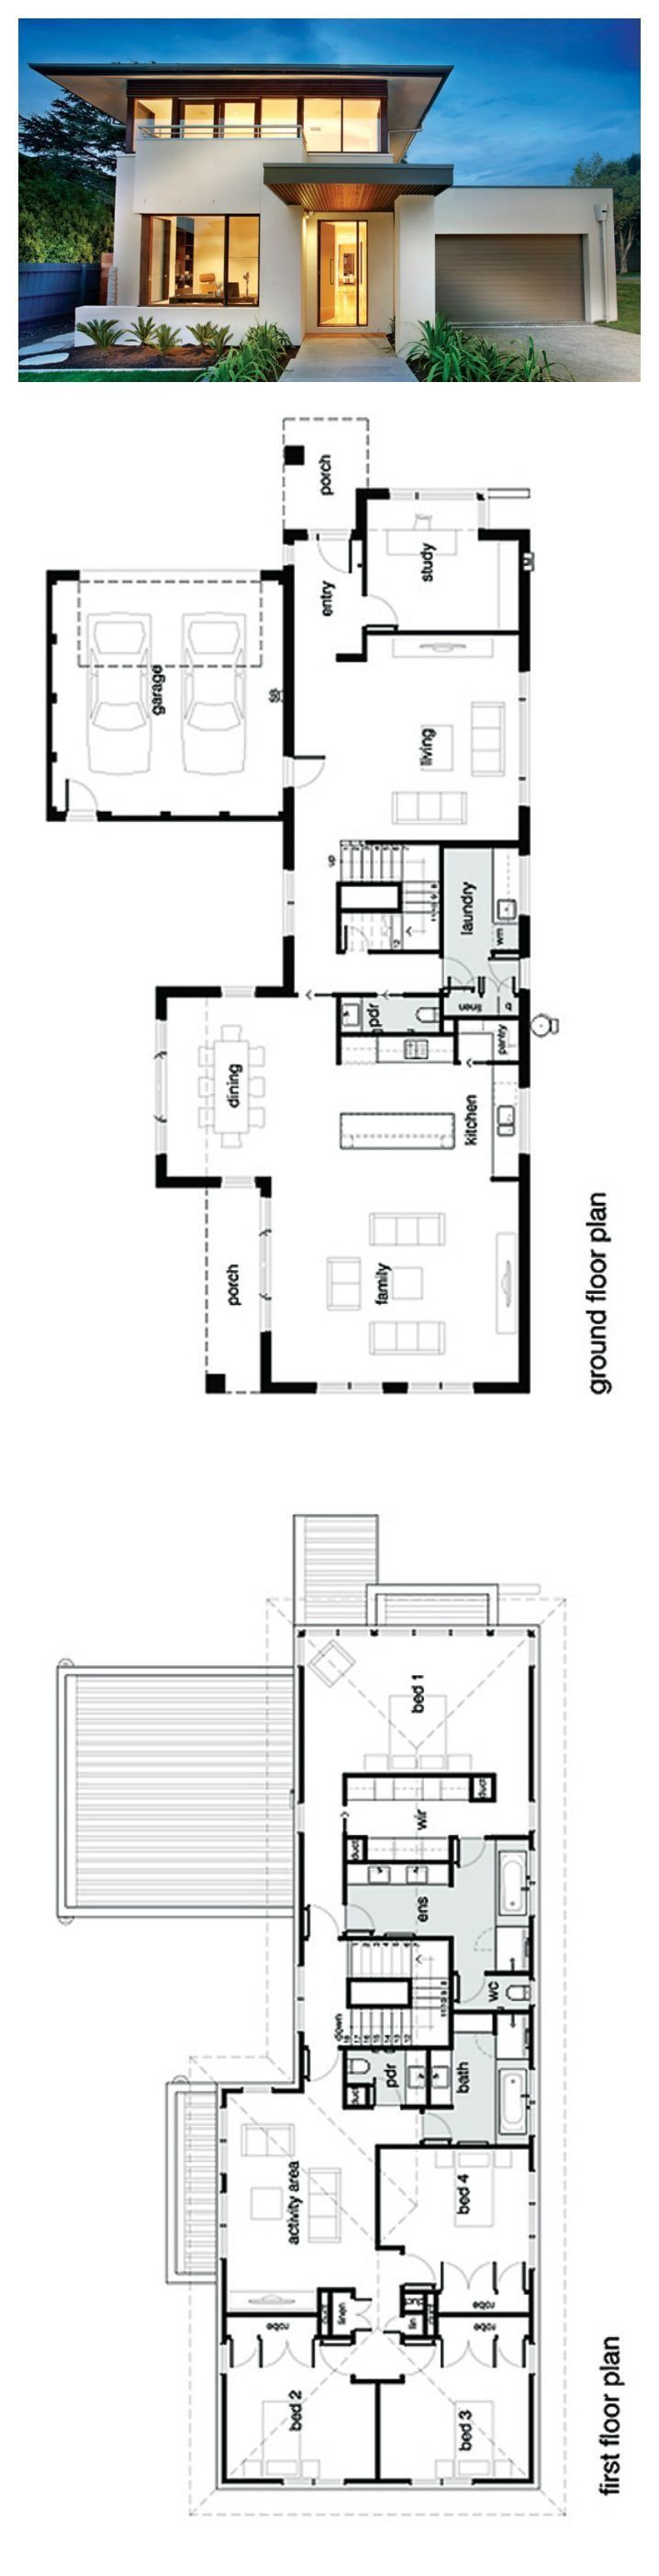 4 Storey Residential Building Floor Plan